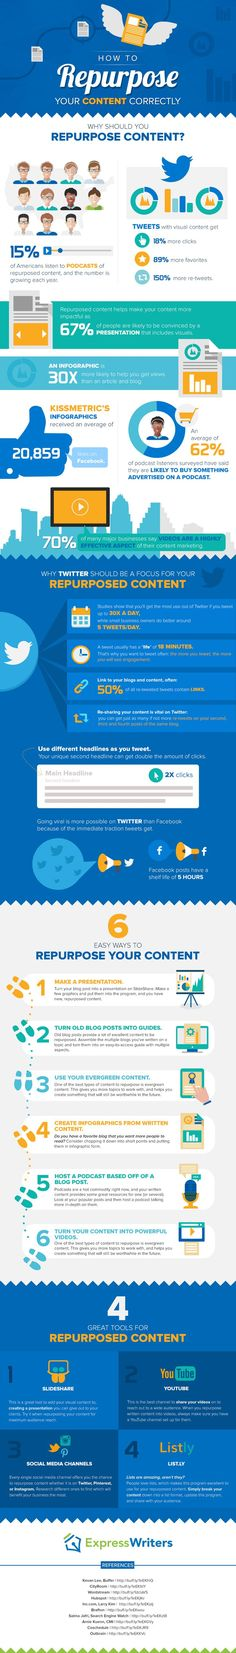 Infographic: How to repurpose your content